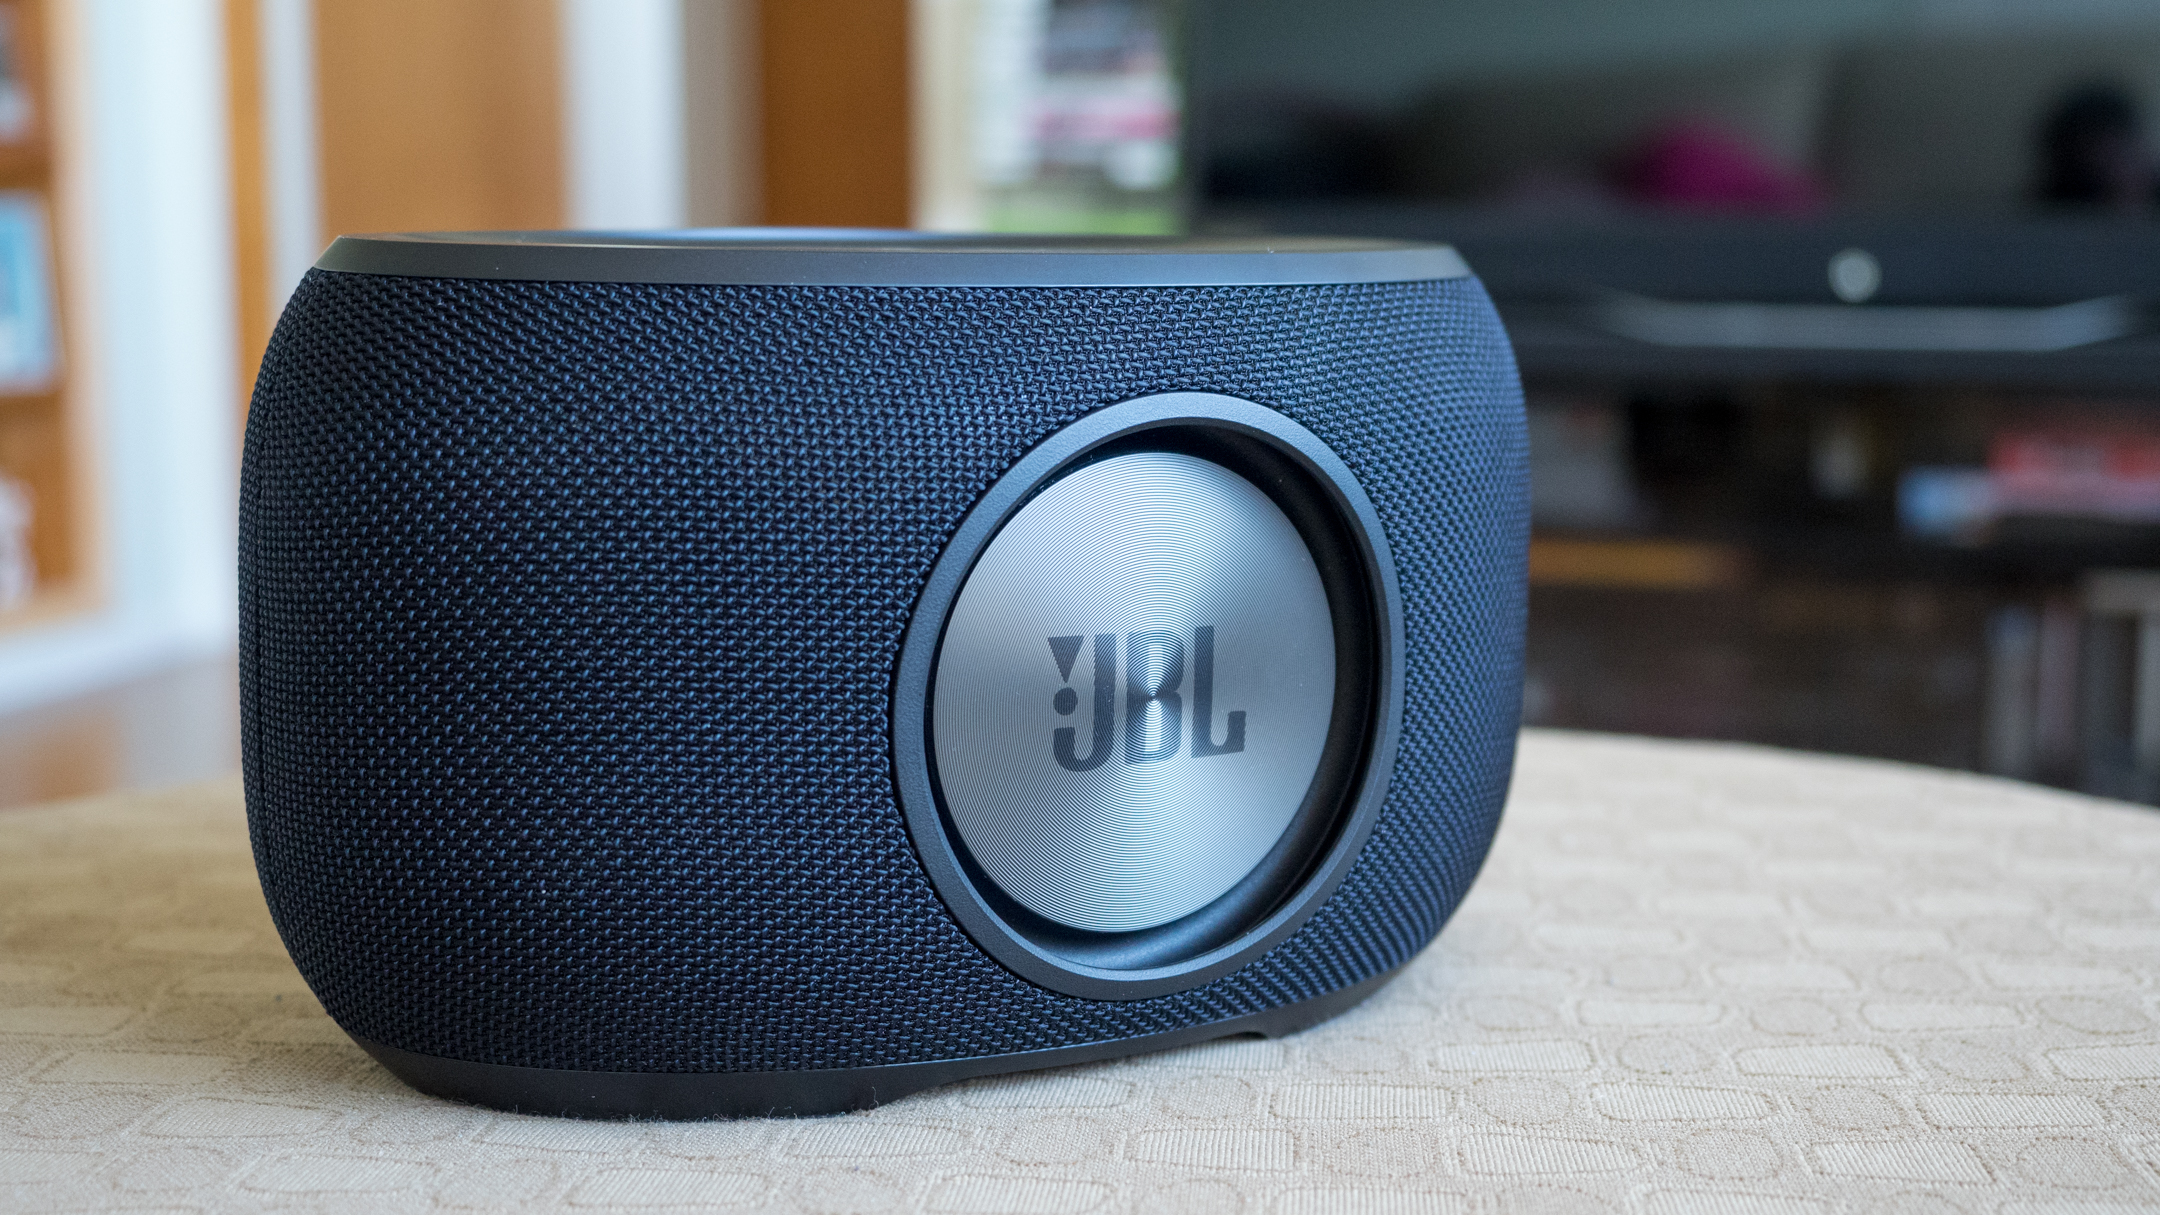 Jbl Bass Jbl Link 300 Smart Speaker Review Techradar